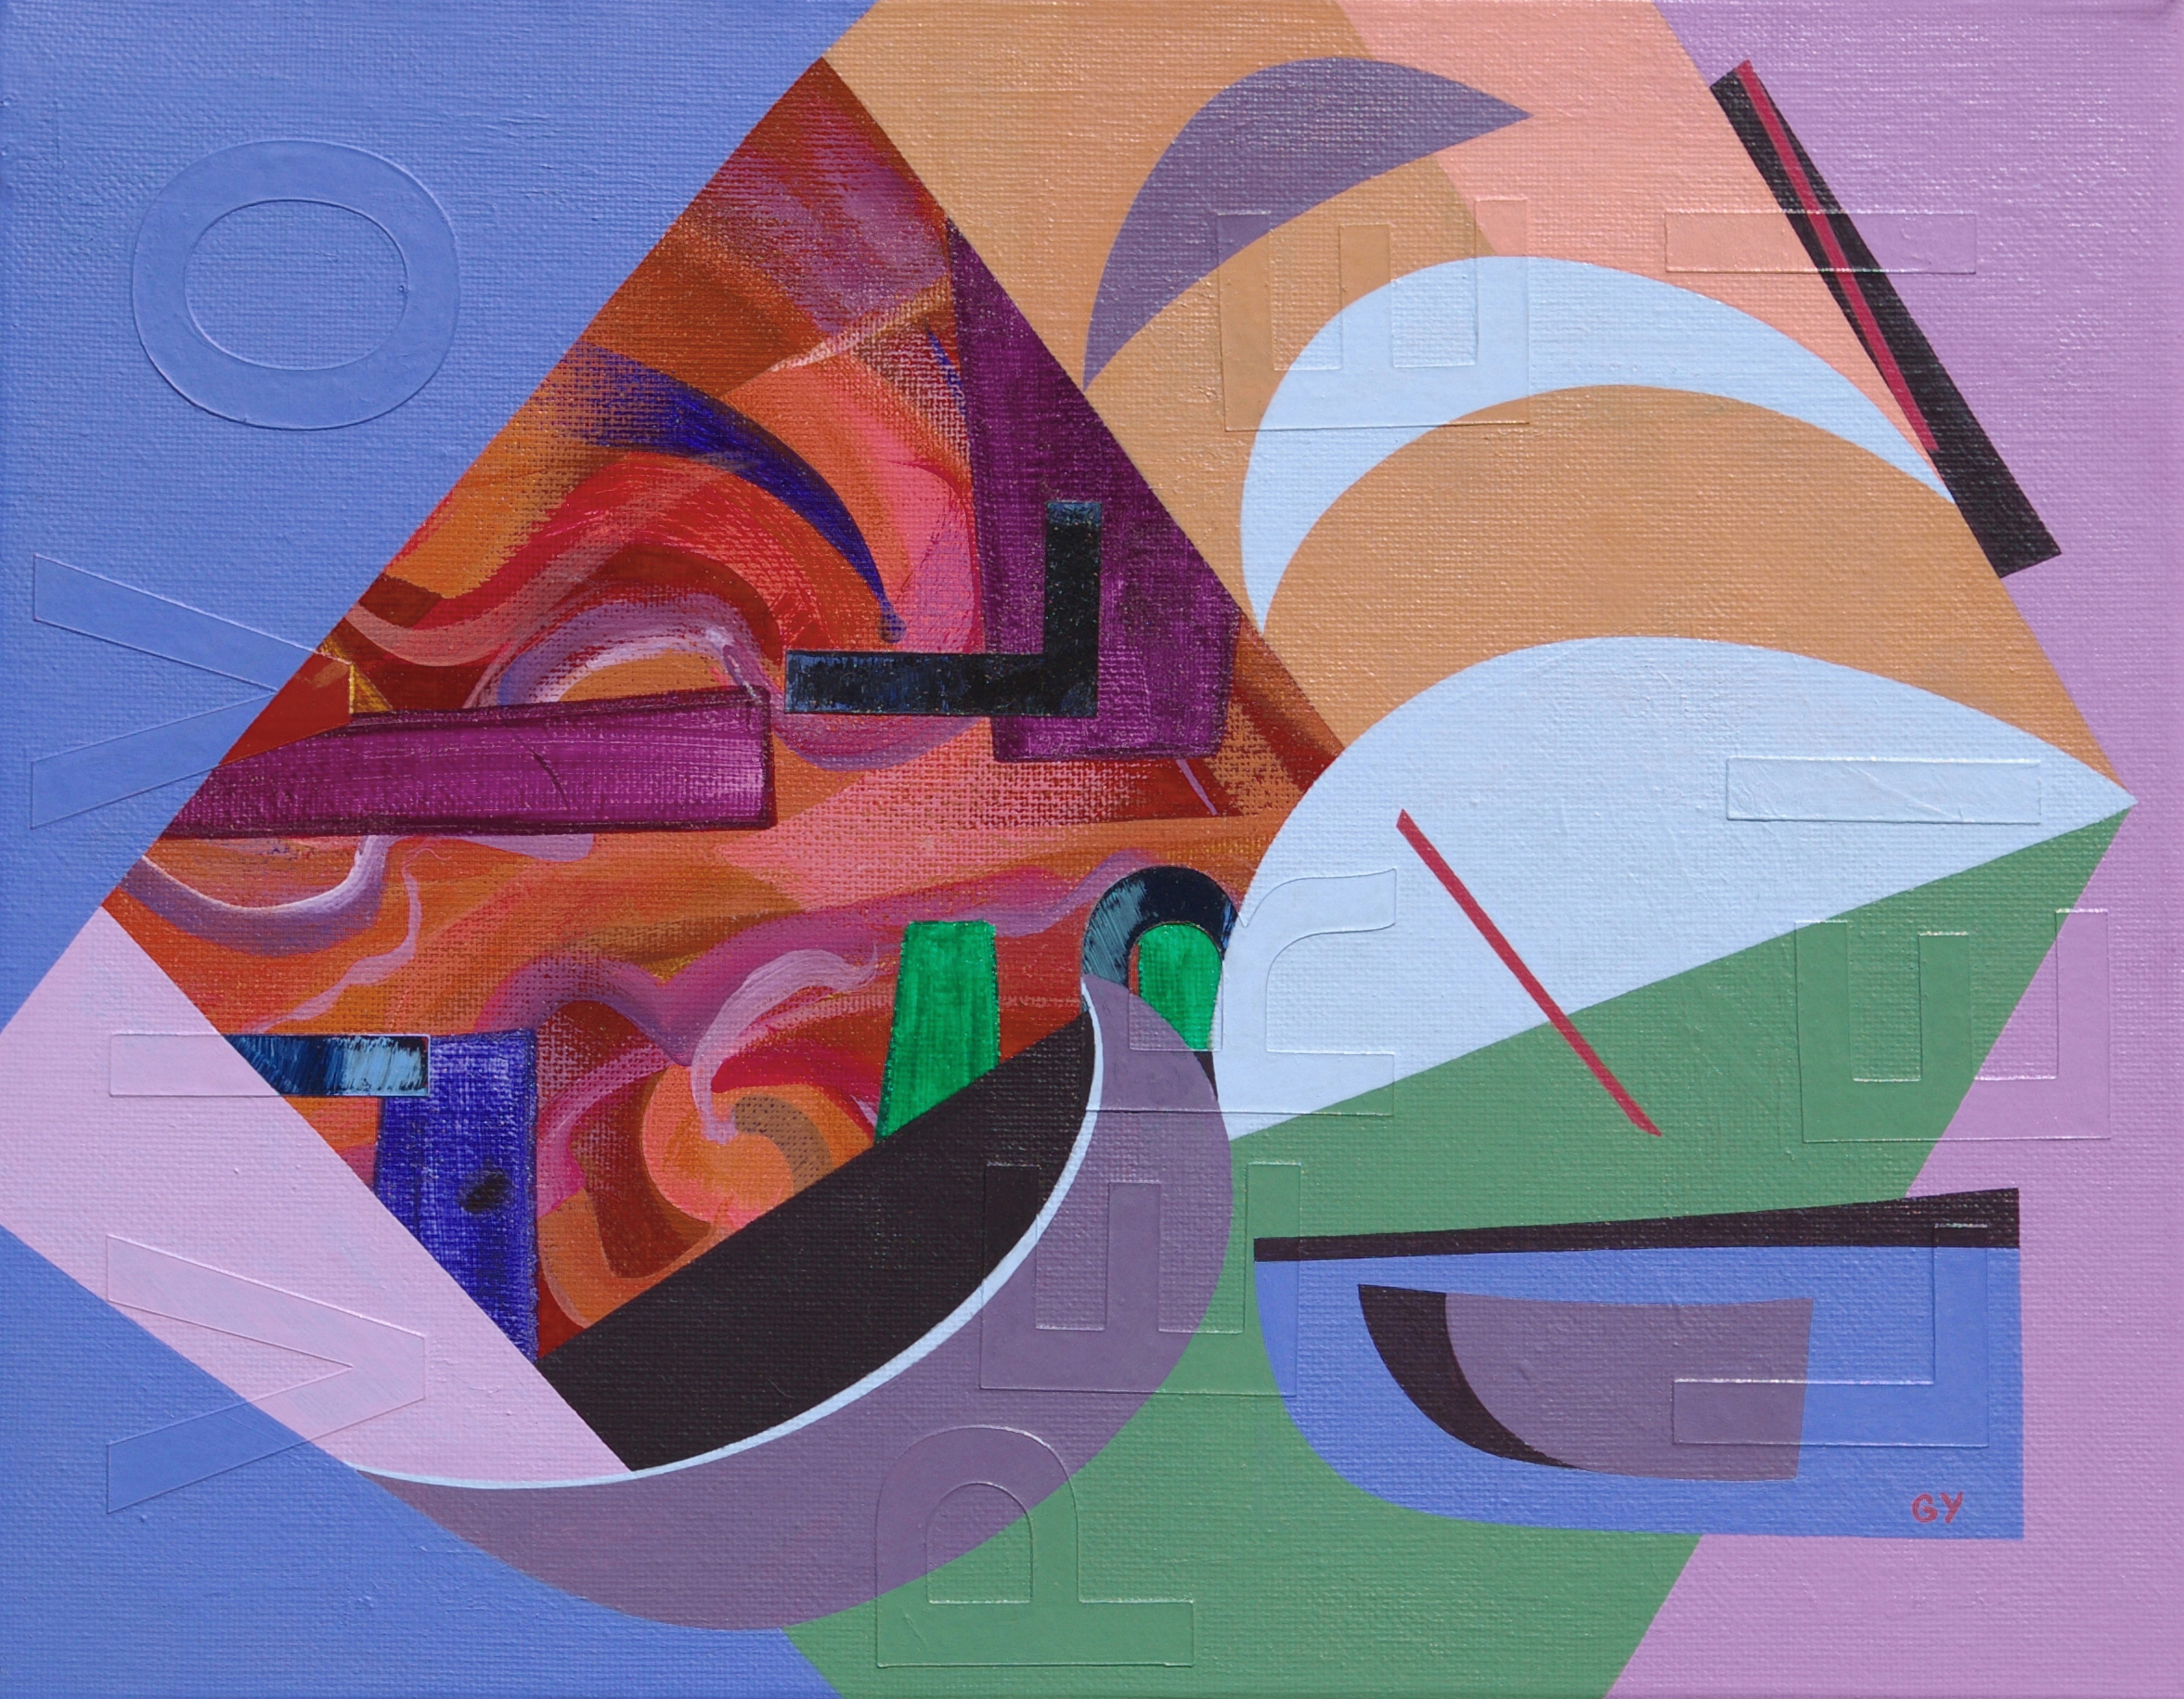 Composition with letters painting by Genia Yusim